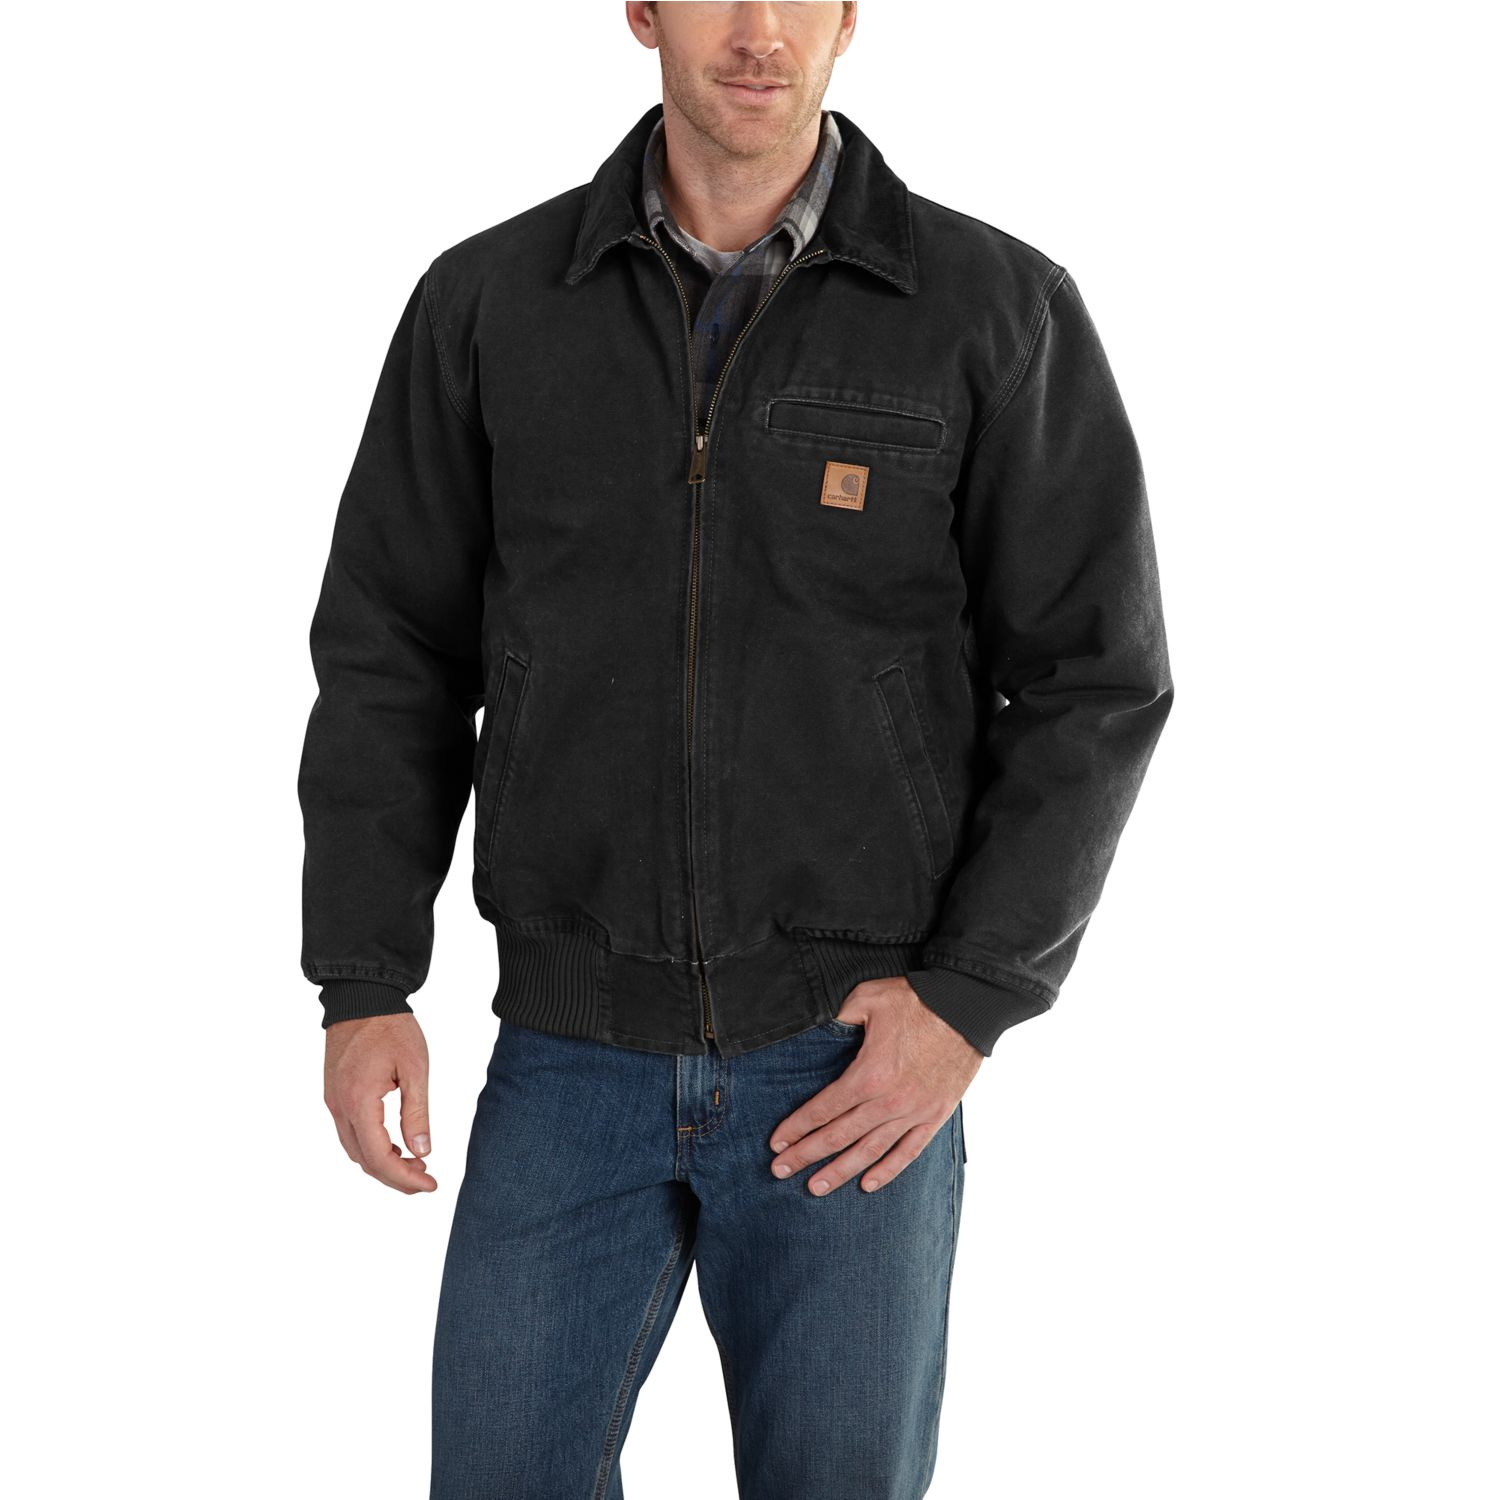 Wholesale Workwear Supplier Uniforms And Flame Resistant